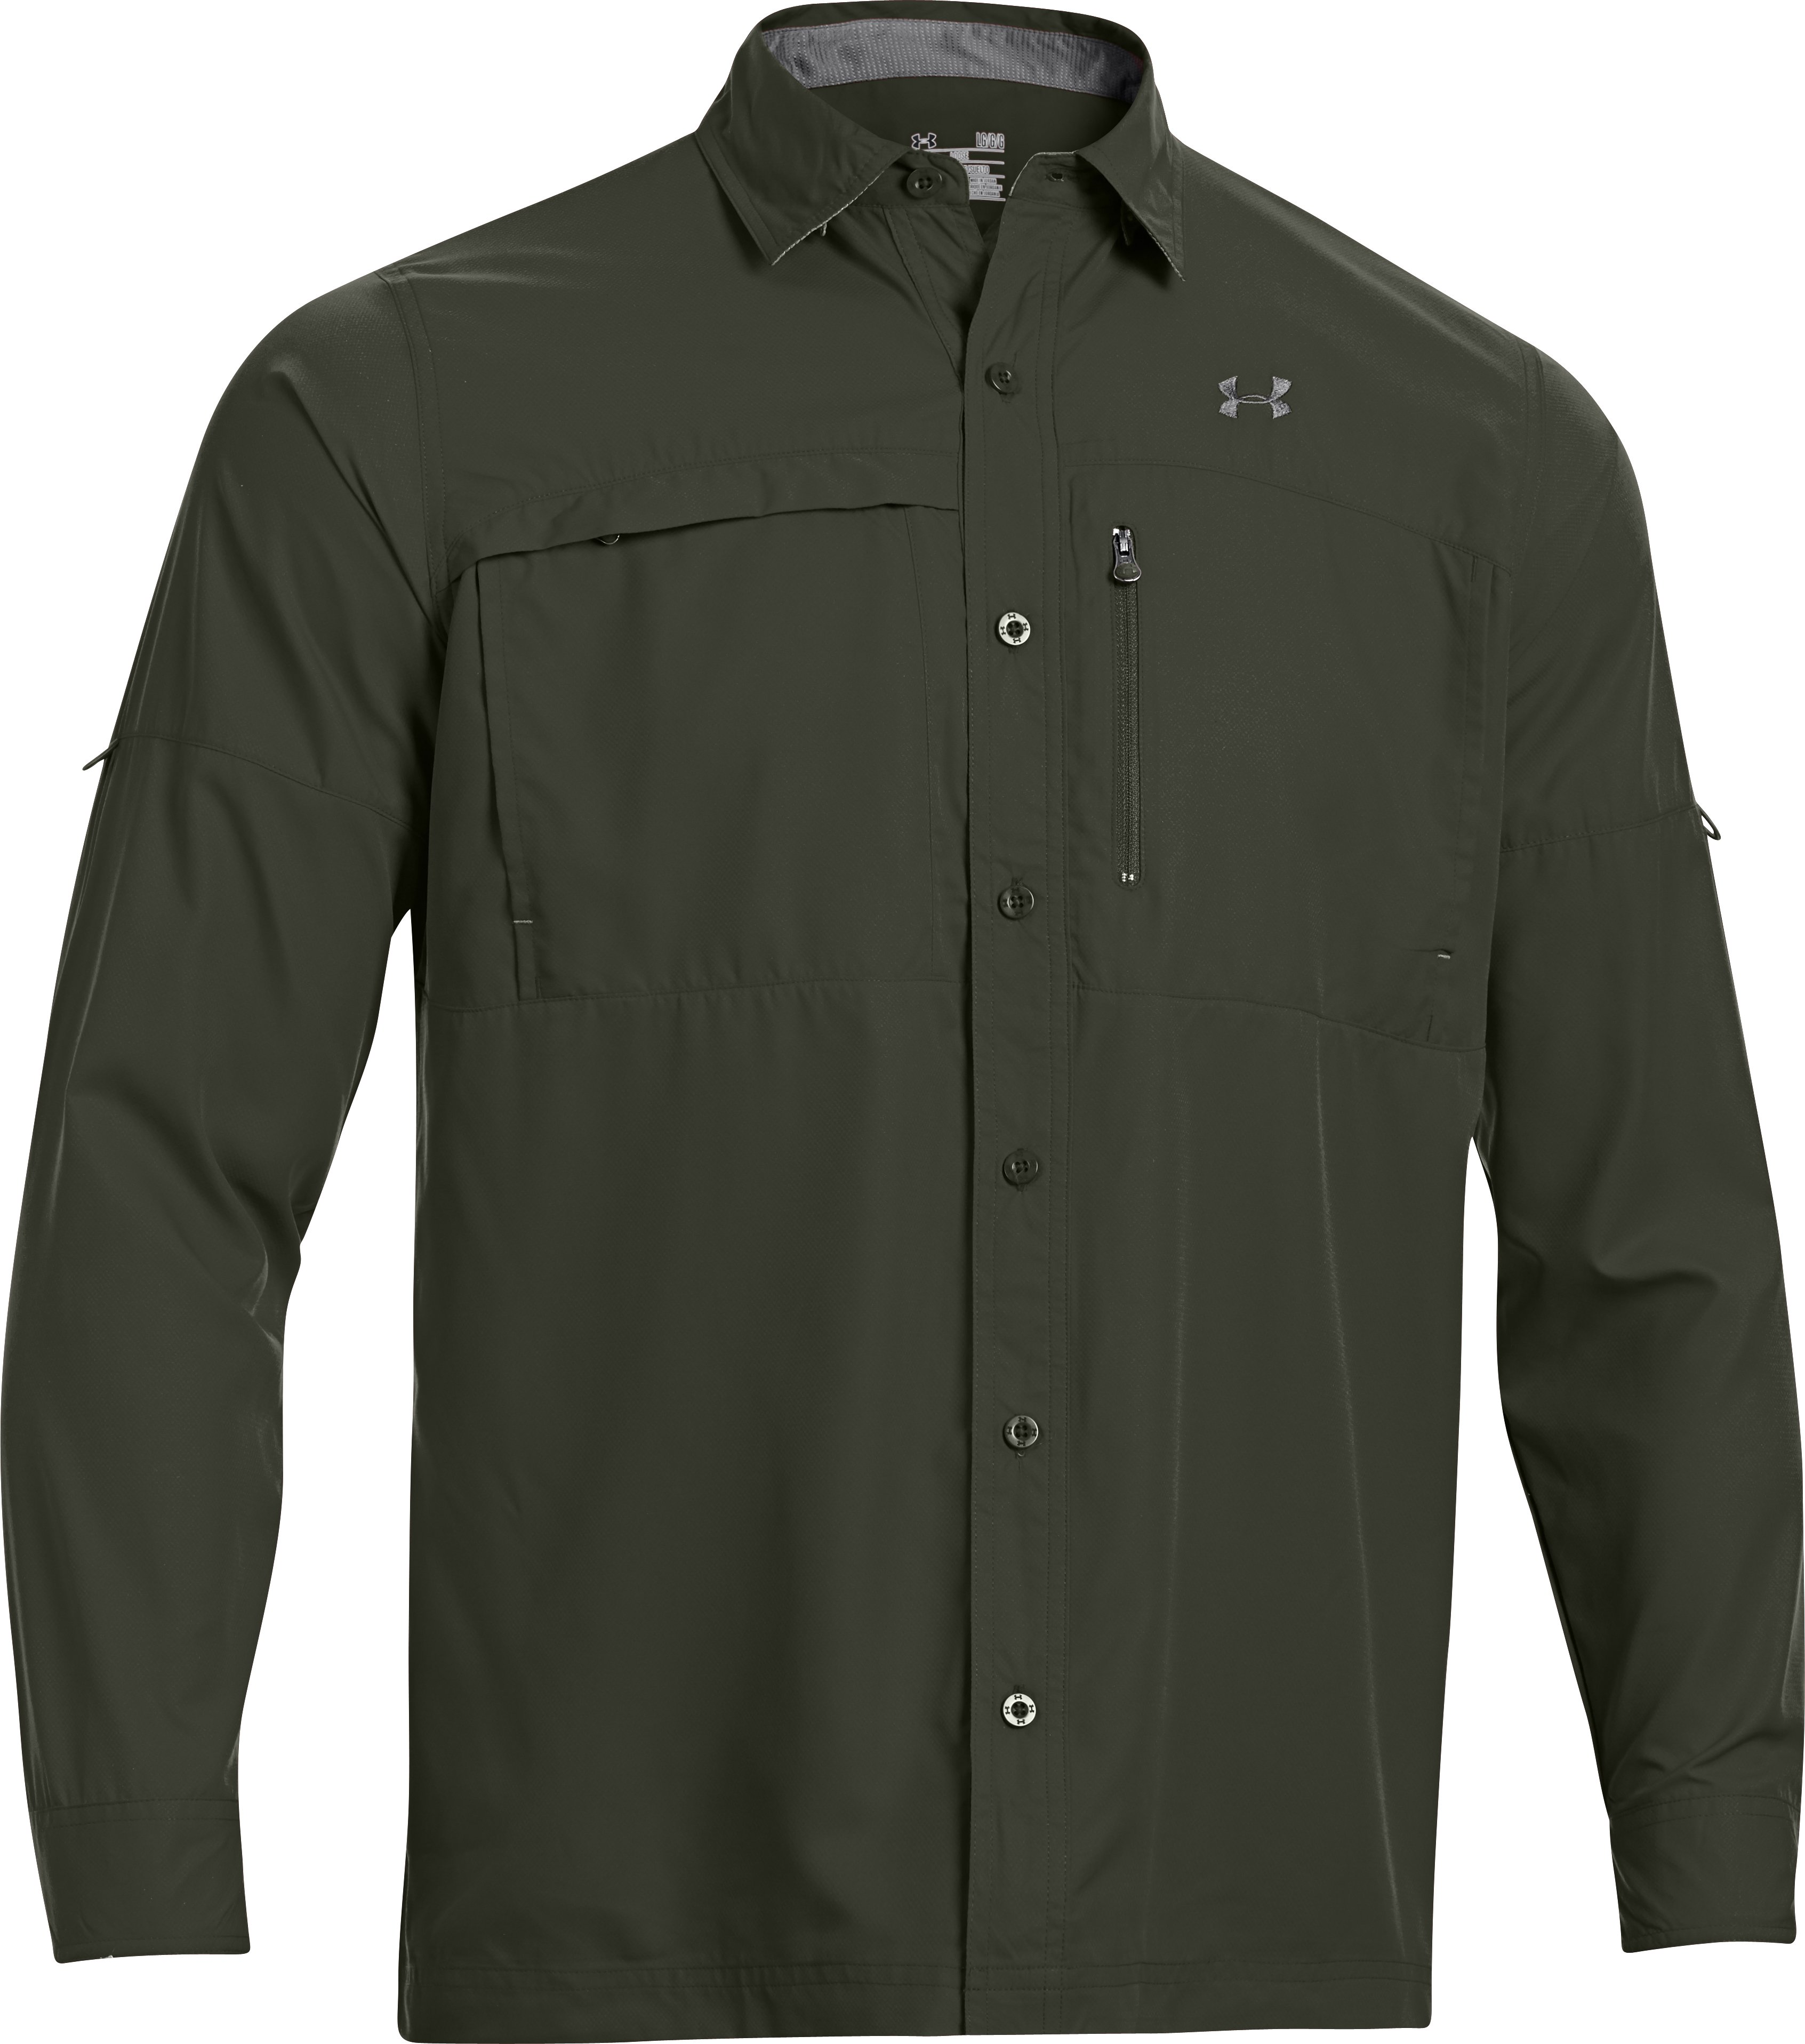 Men's Flats Guide Long Sleeve Shirt, Rifle Green, undefined